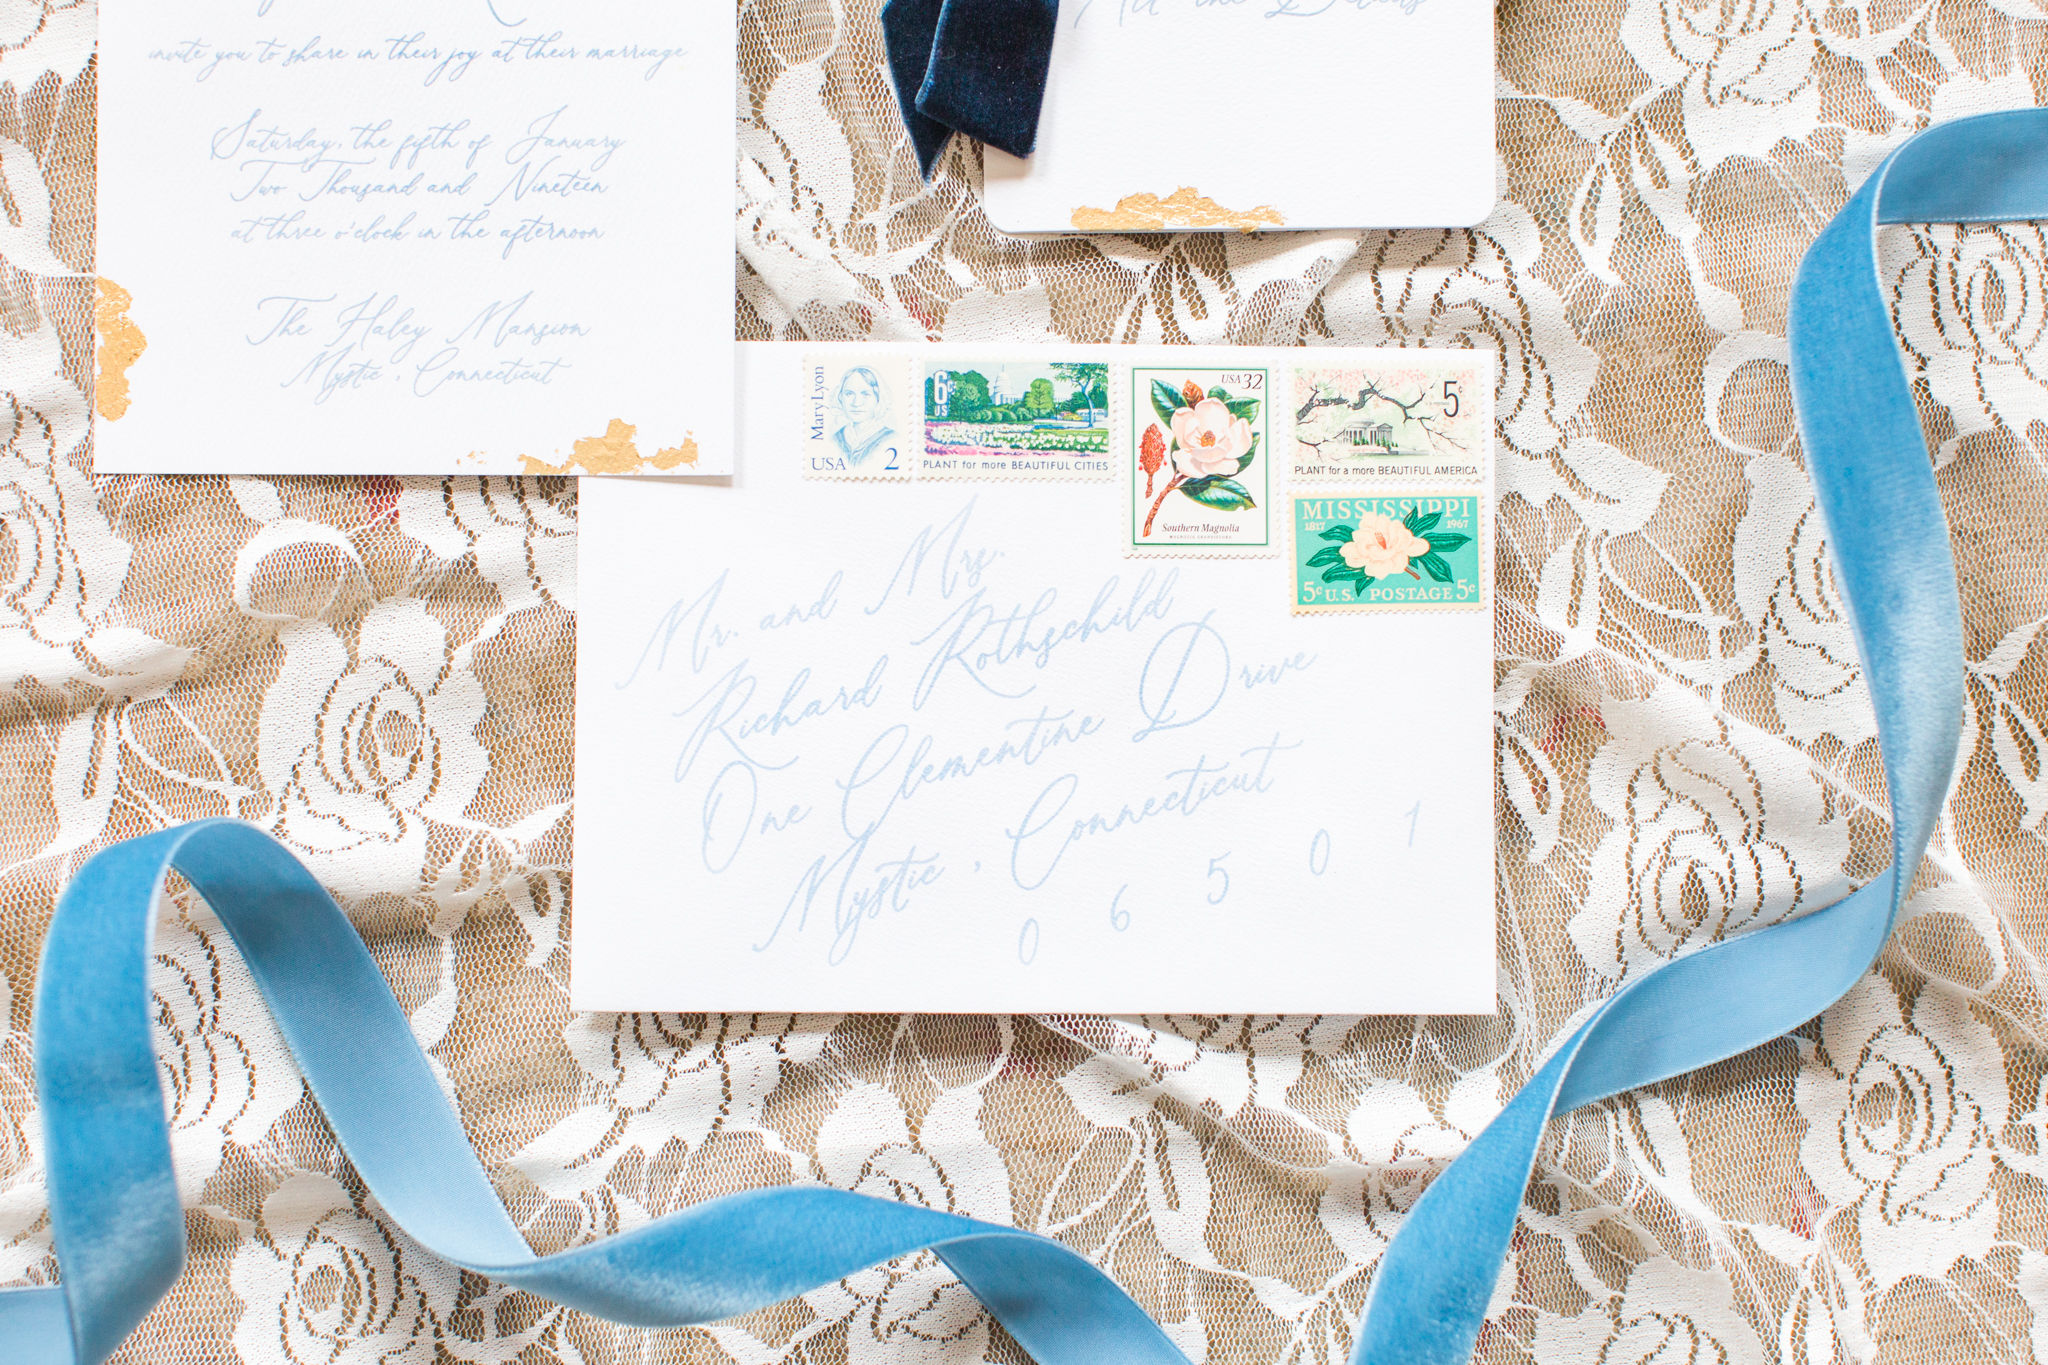 Invitation suite flat lays showcasing the vintage stamps, light blue fonts, gold leaf design for this elegant wedding - Pearl Weddings & Events